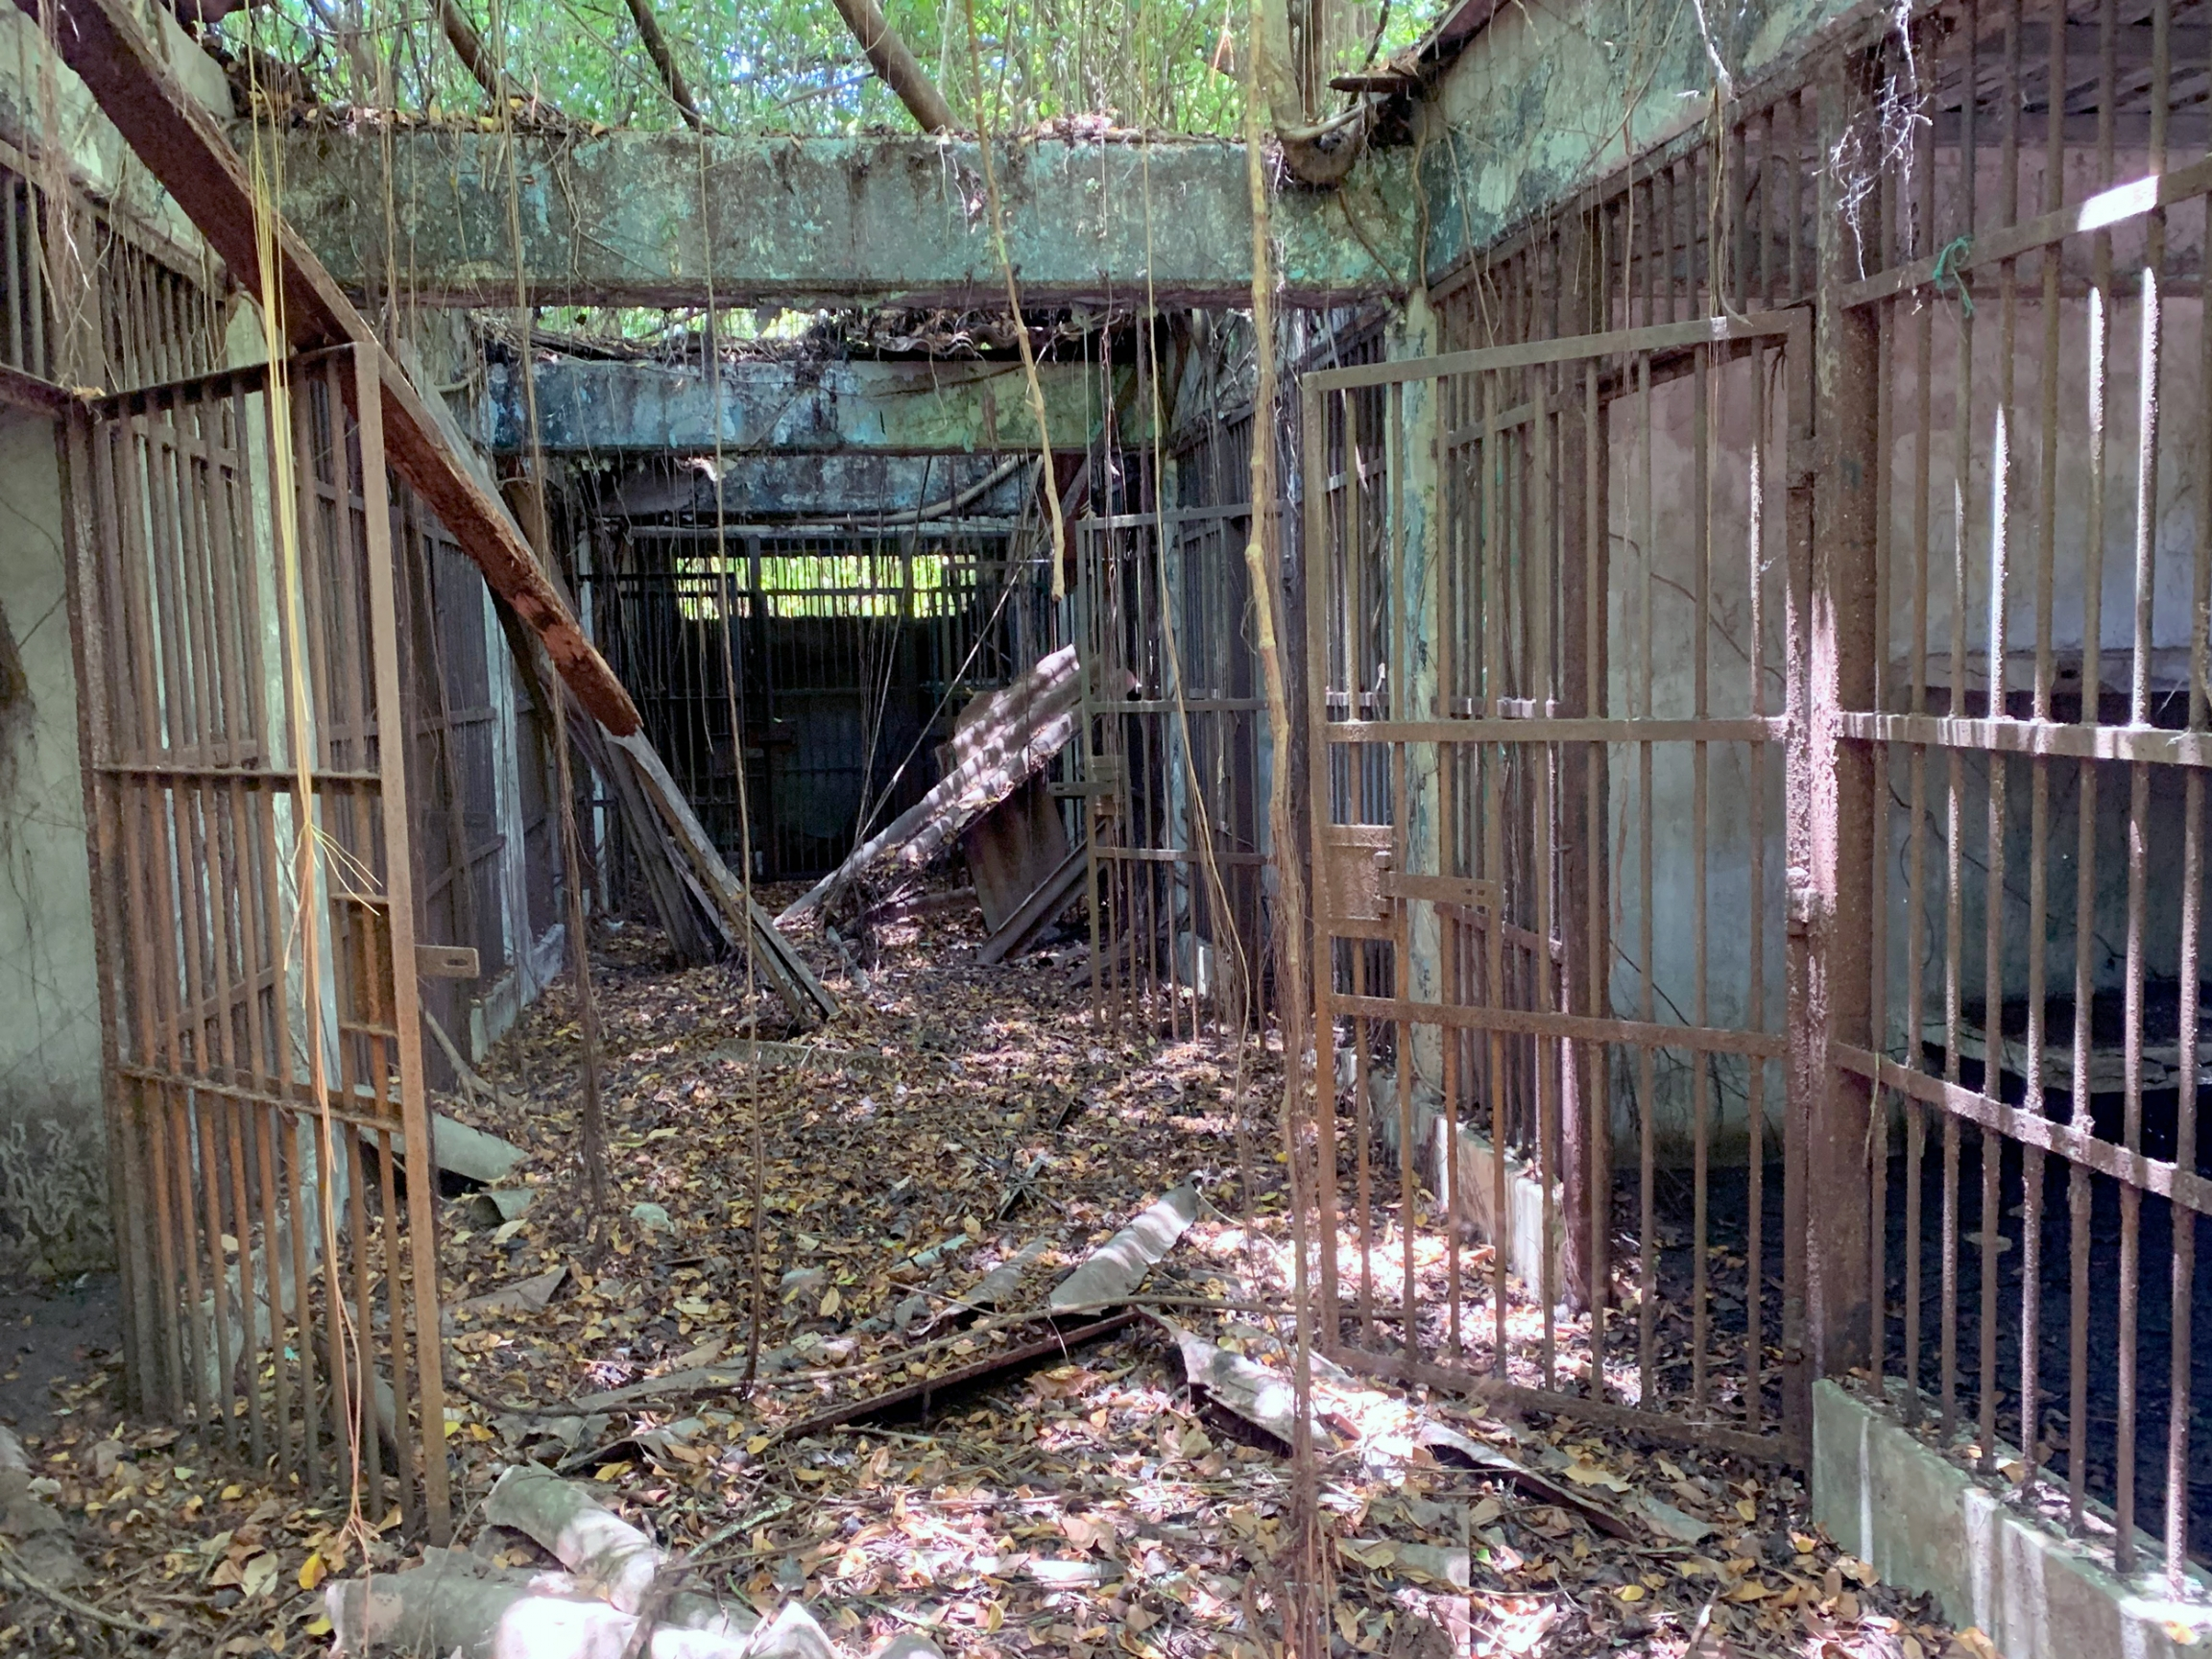 A former prison is covered in vines and the metal bars have rusted over